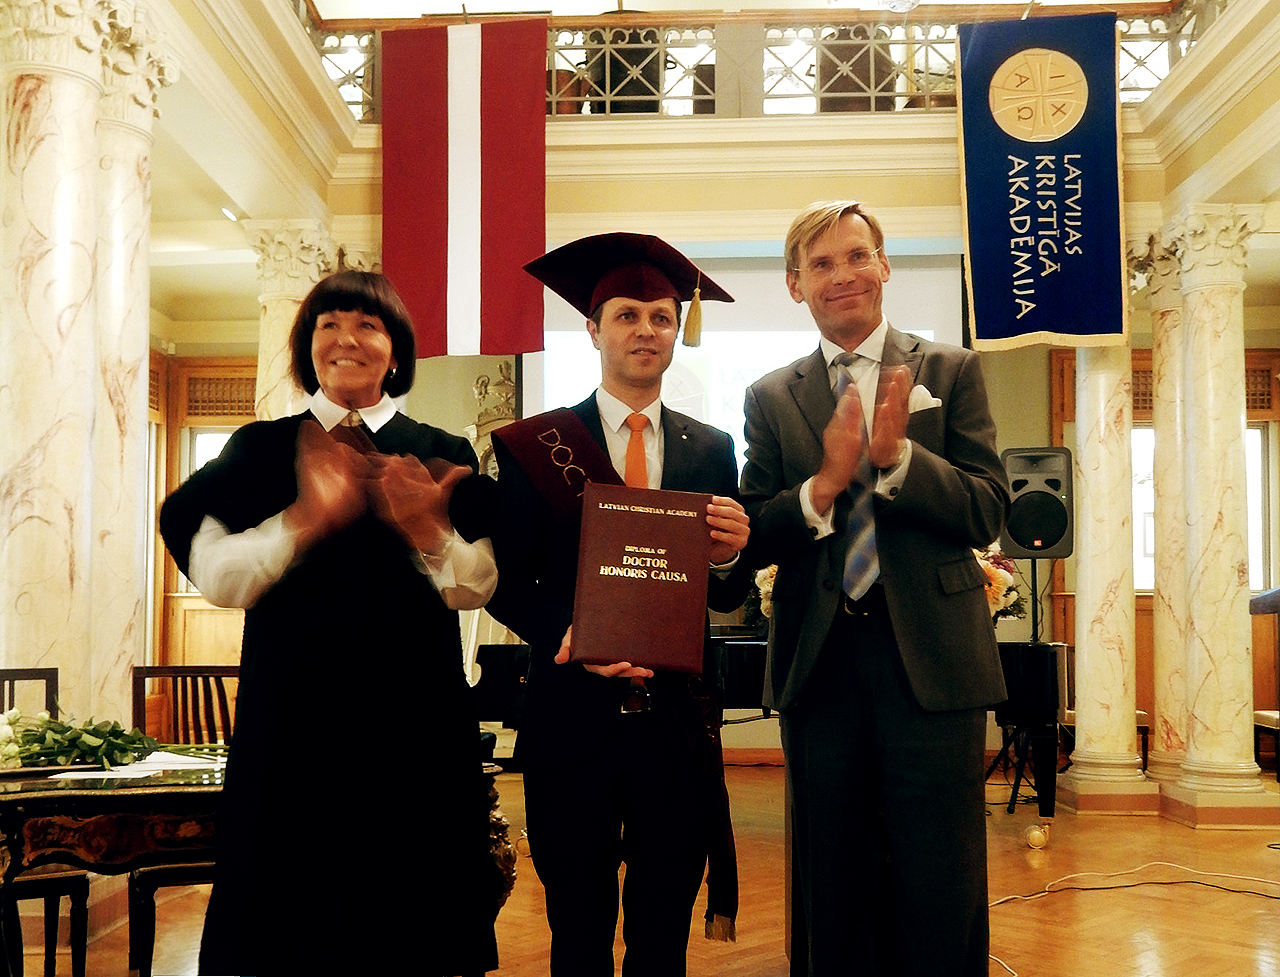 Mr. George van Durtanosky (Germany, The Netherlands) awarded with the Honorary Degree of Latvian Christian academy